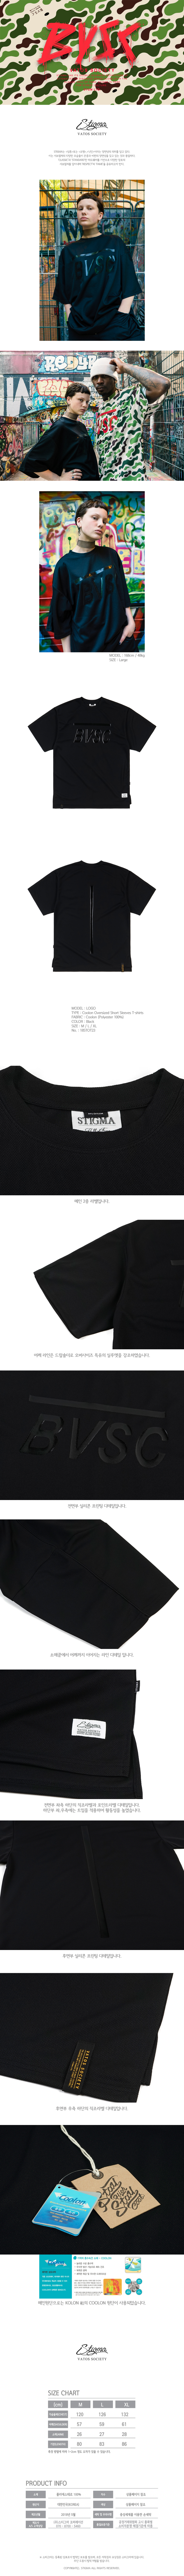 스티그마 STIGMA LOGO COOLON OVERSIZED T-SHIRTS BLACK